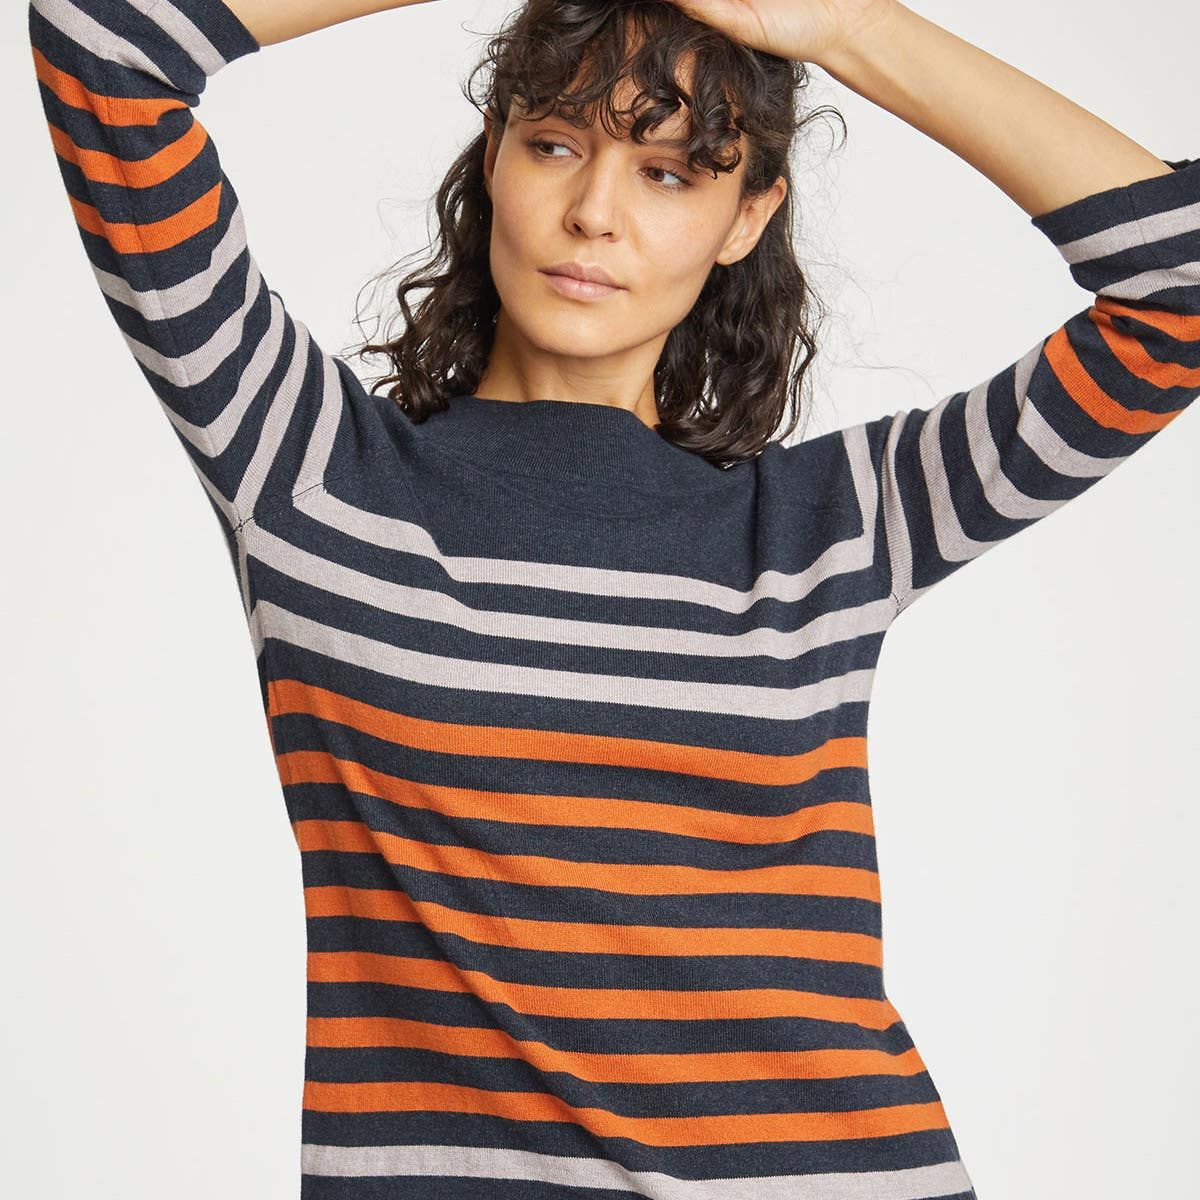 Thought Orange Stripe Sail La Vie Organic Cotton Women's Jumper Size 12